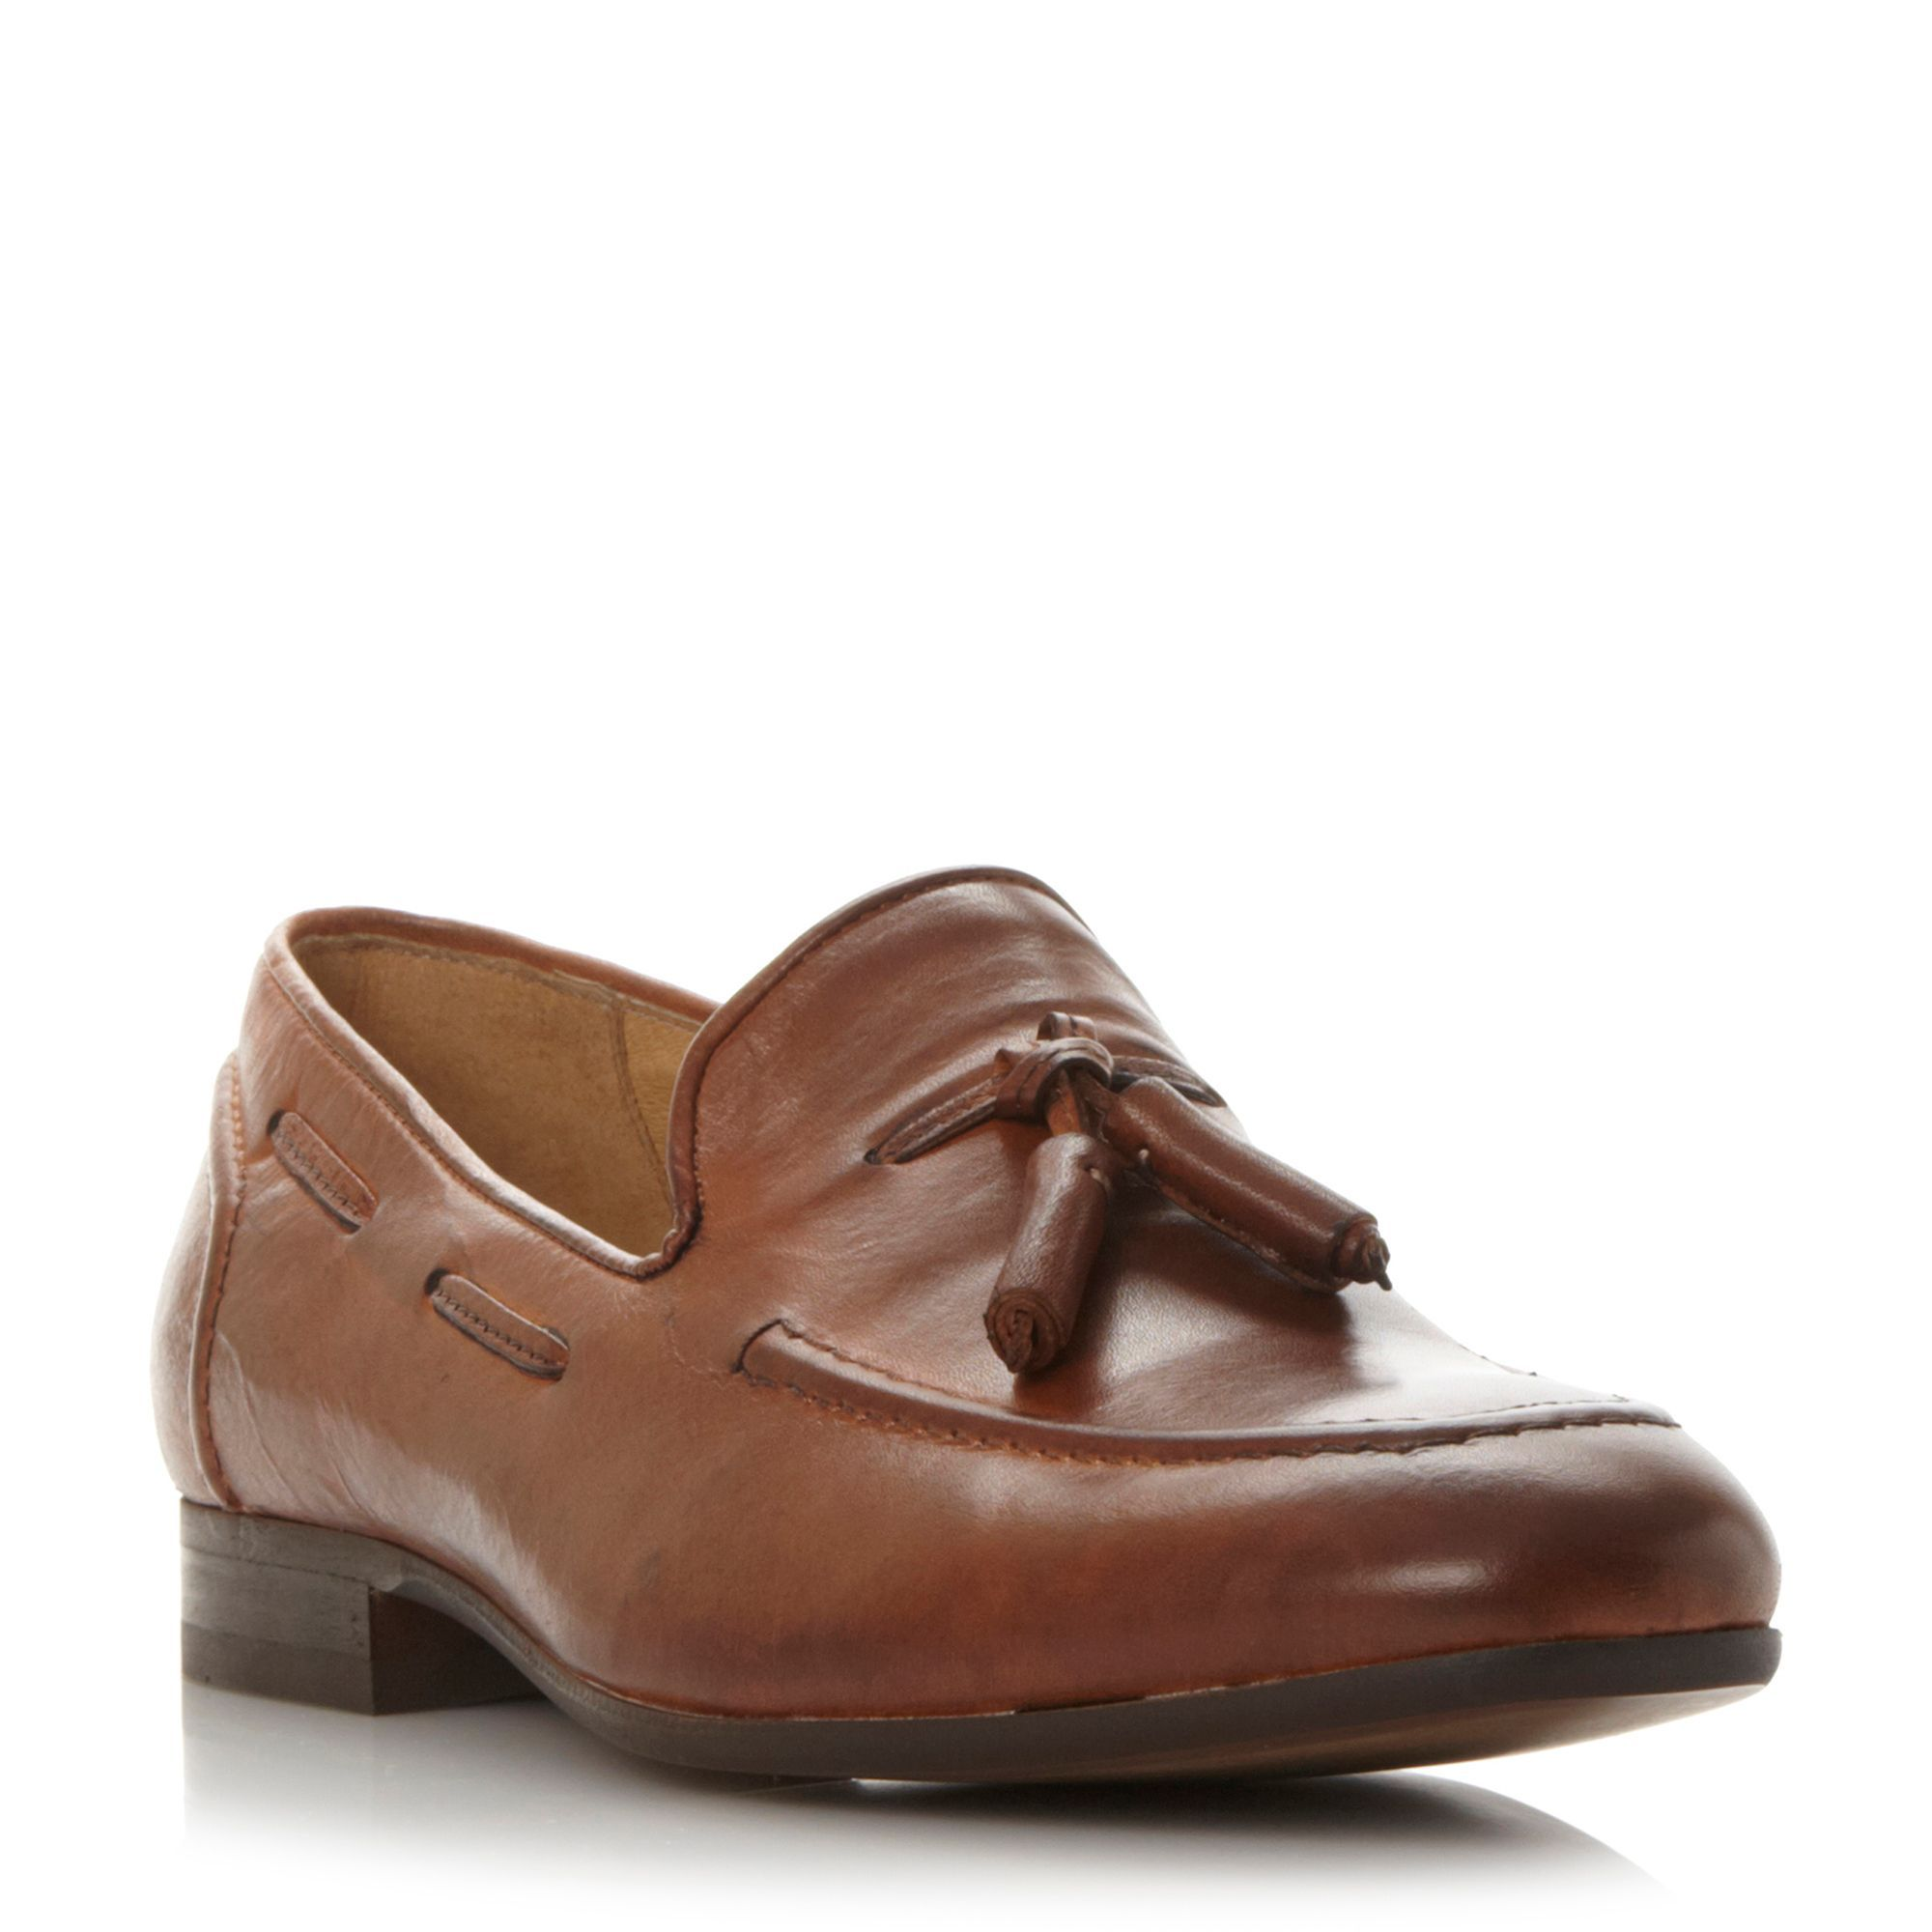 H by Hudson Pierre tassle loafers, Tan